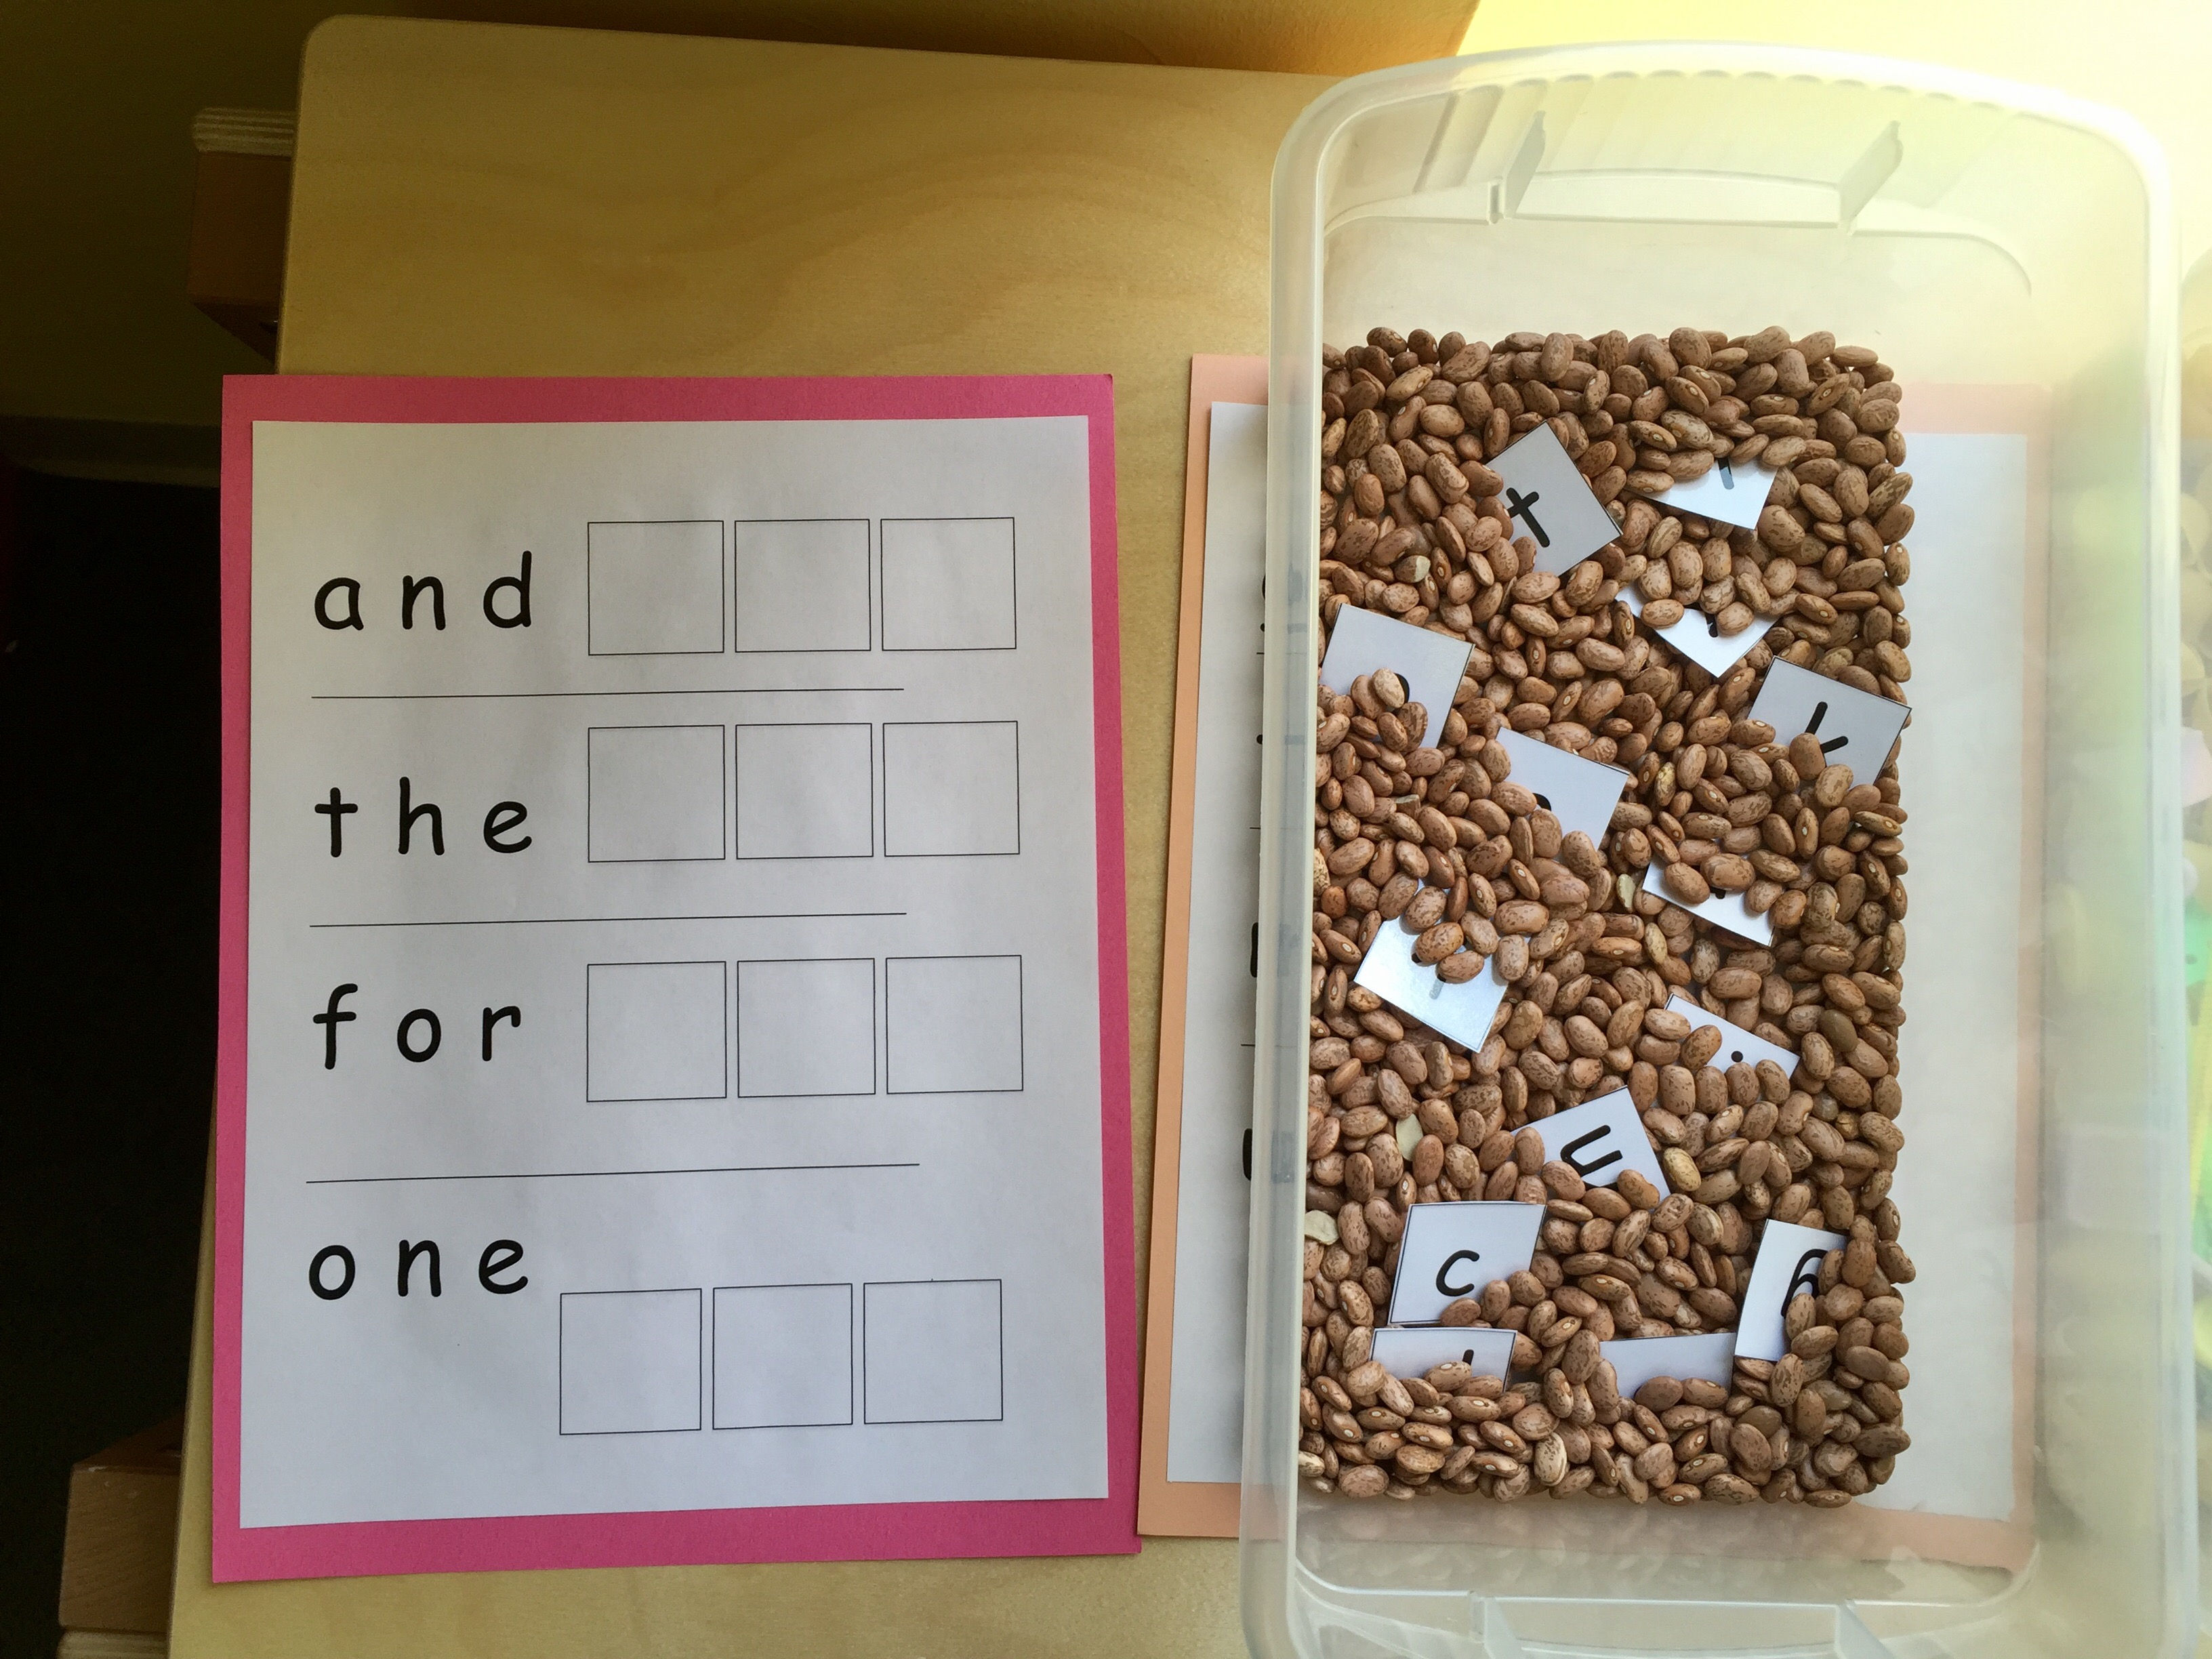 Sight words are a huge part of early childhood and elementary school, so we created these laminated sheets of sight words that we are covering in class. The kids have letters in a bin and they have to spell out the sight words.